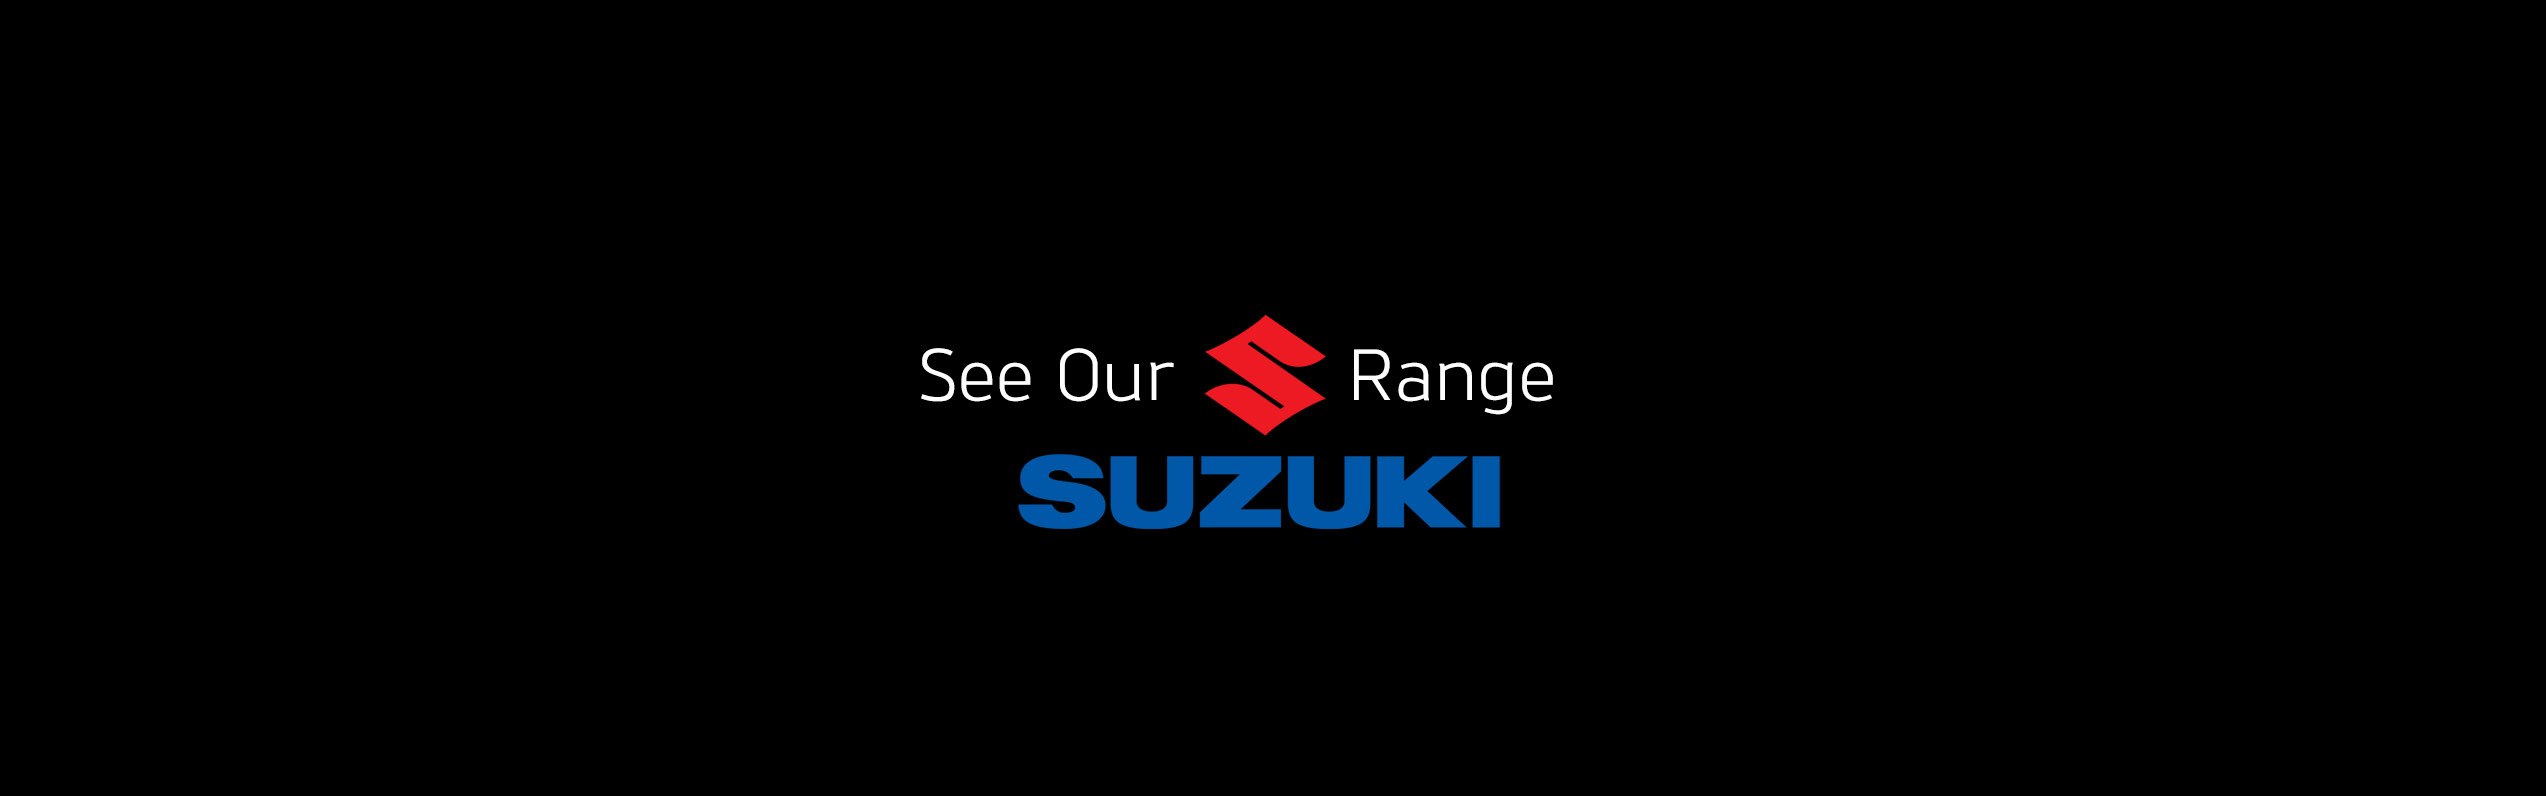 Motorcycle Dealer for Triumph and Suzuki Motorcycles in